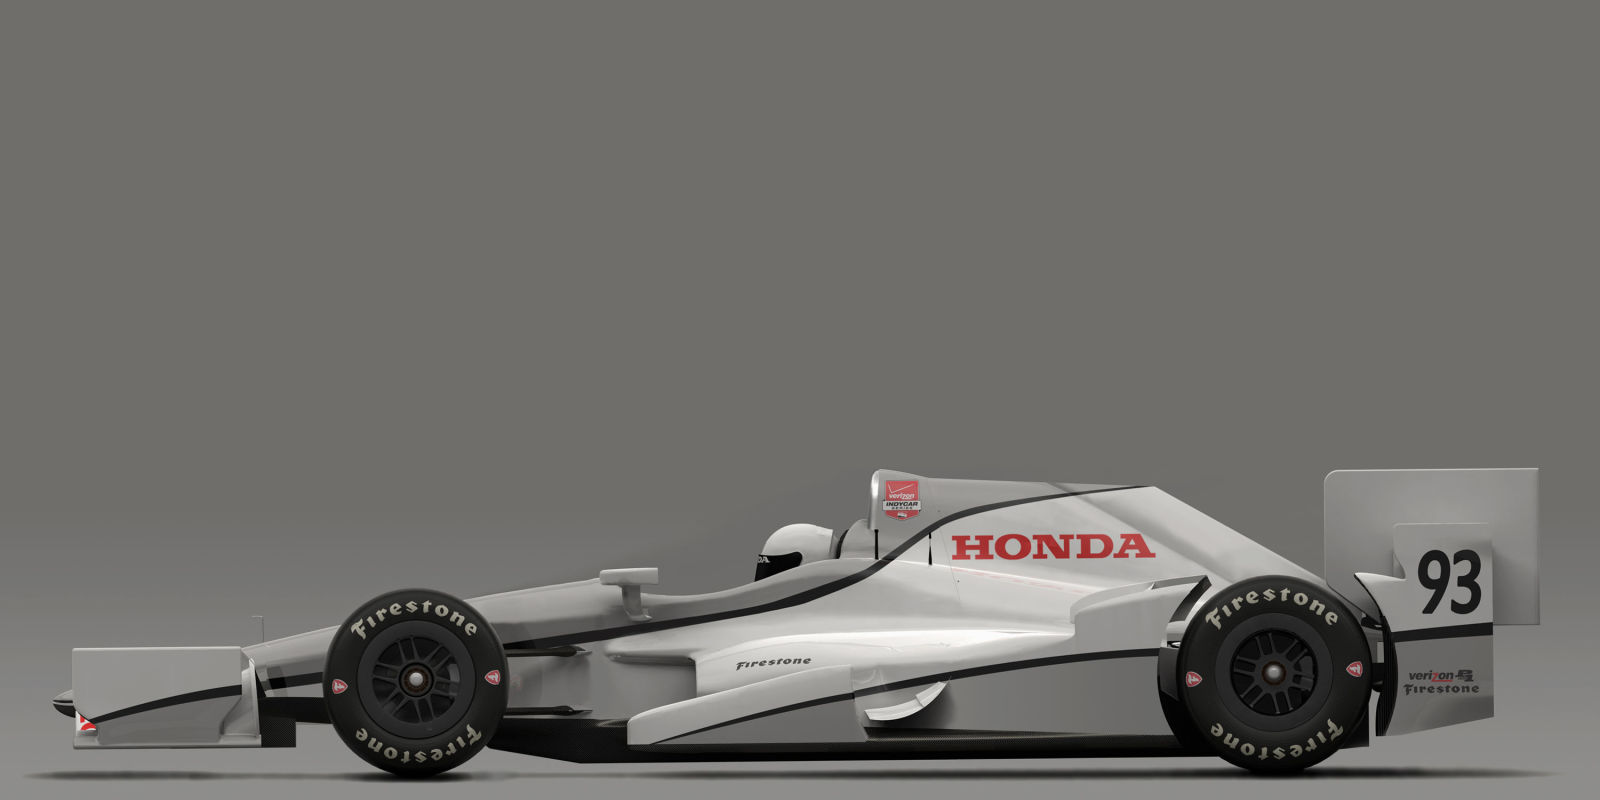 2015 BMW 750Li >> 2015 Honda IndyCar Aero Kit is Another Way of Living In the Fast Lane - autoevolution